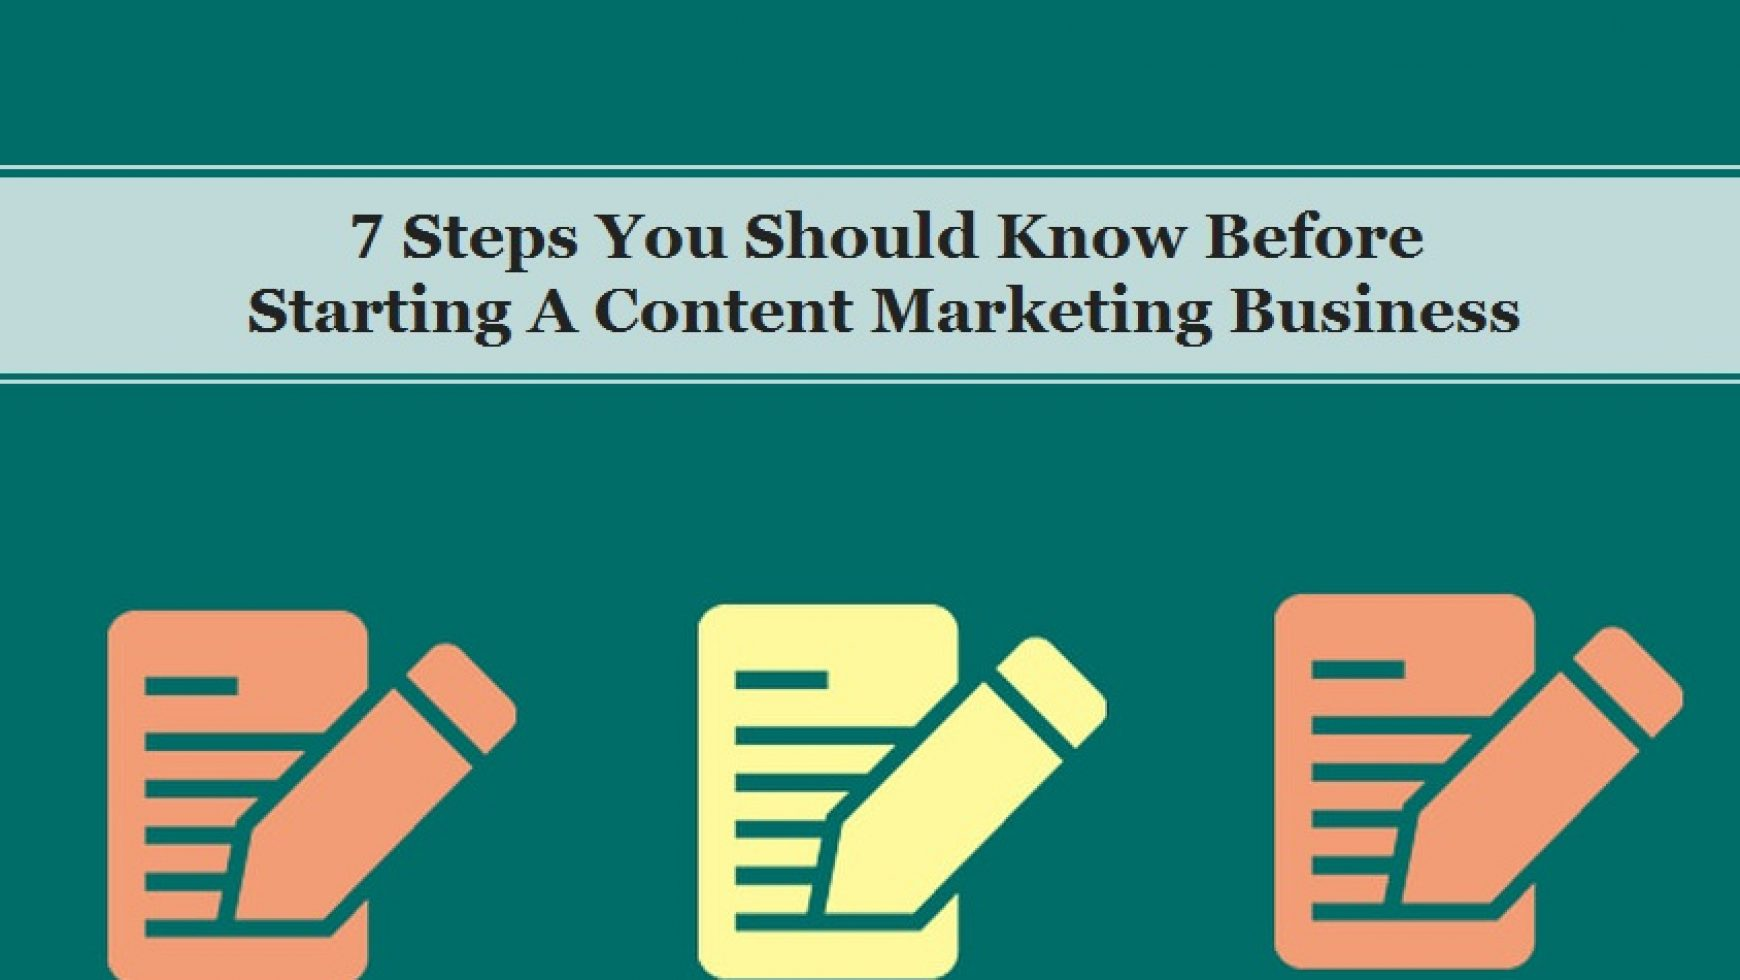 7 Steps You Should Know Before Starting A Content Marketing Business